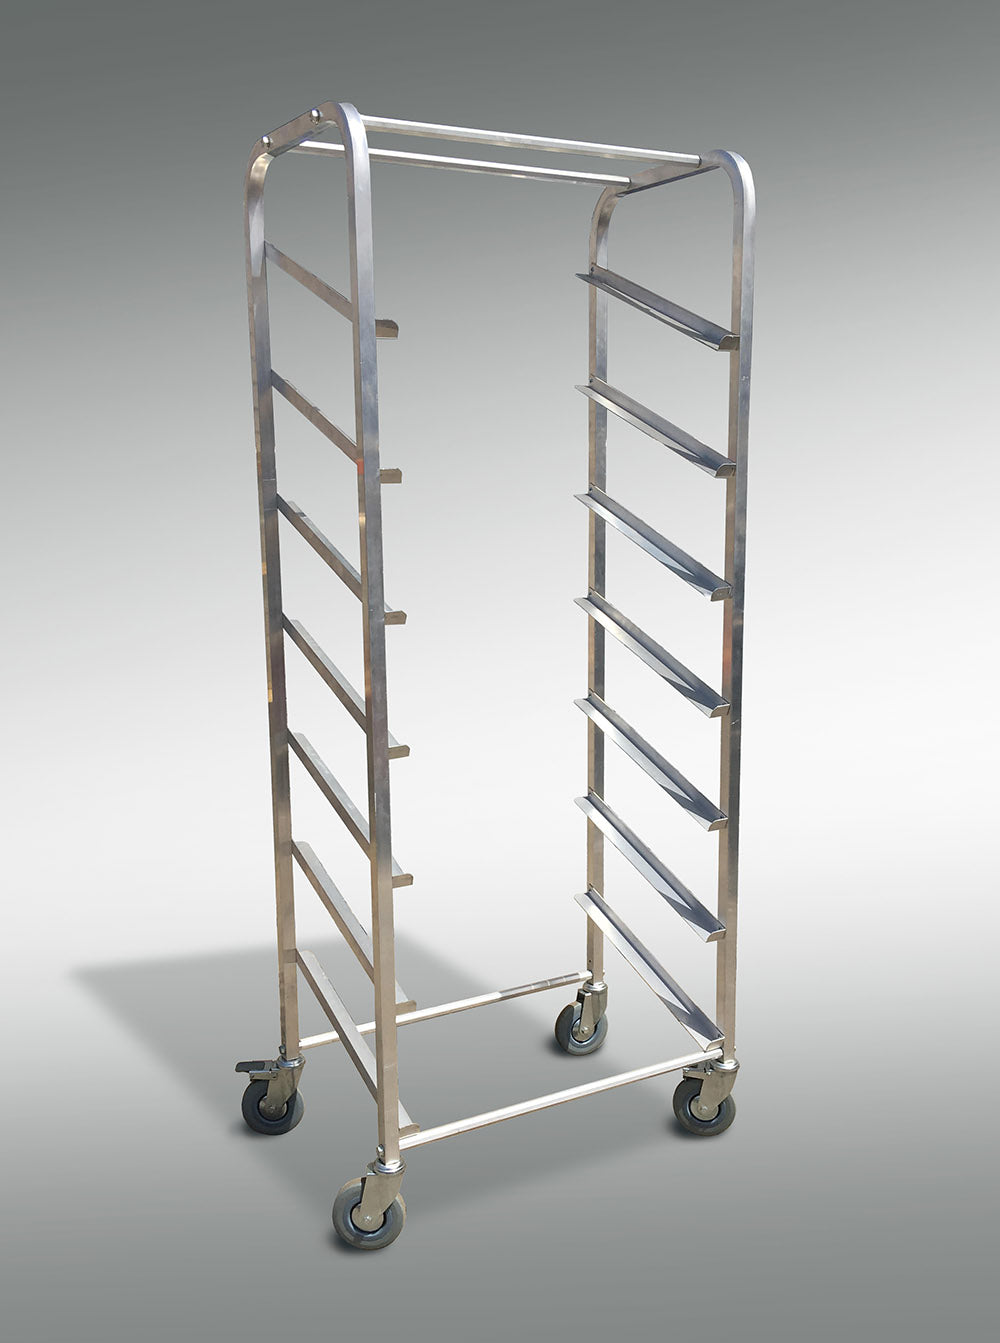 DISPLAY RIVETED RACKS - CROWN COOKWARE CA WEB STORE